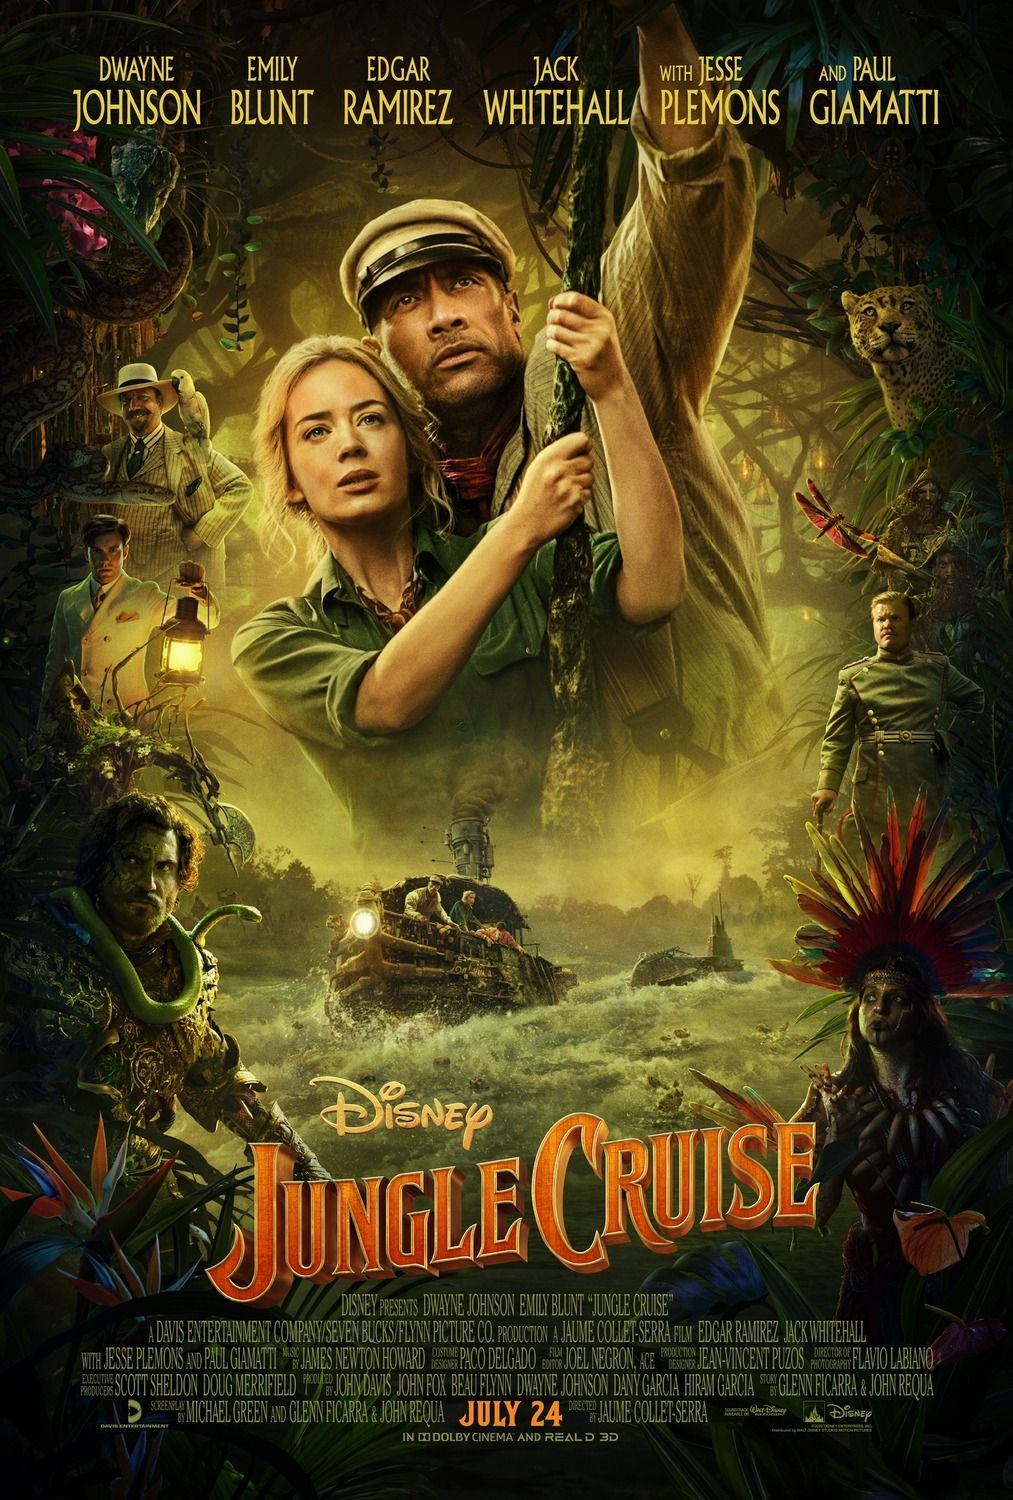 Disney S Jungle Cruise New Movie Posters Trailer Film Cruise